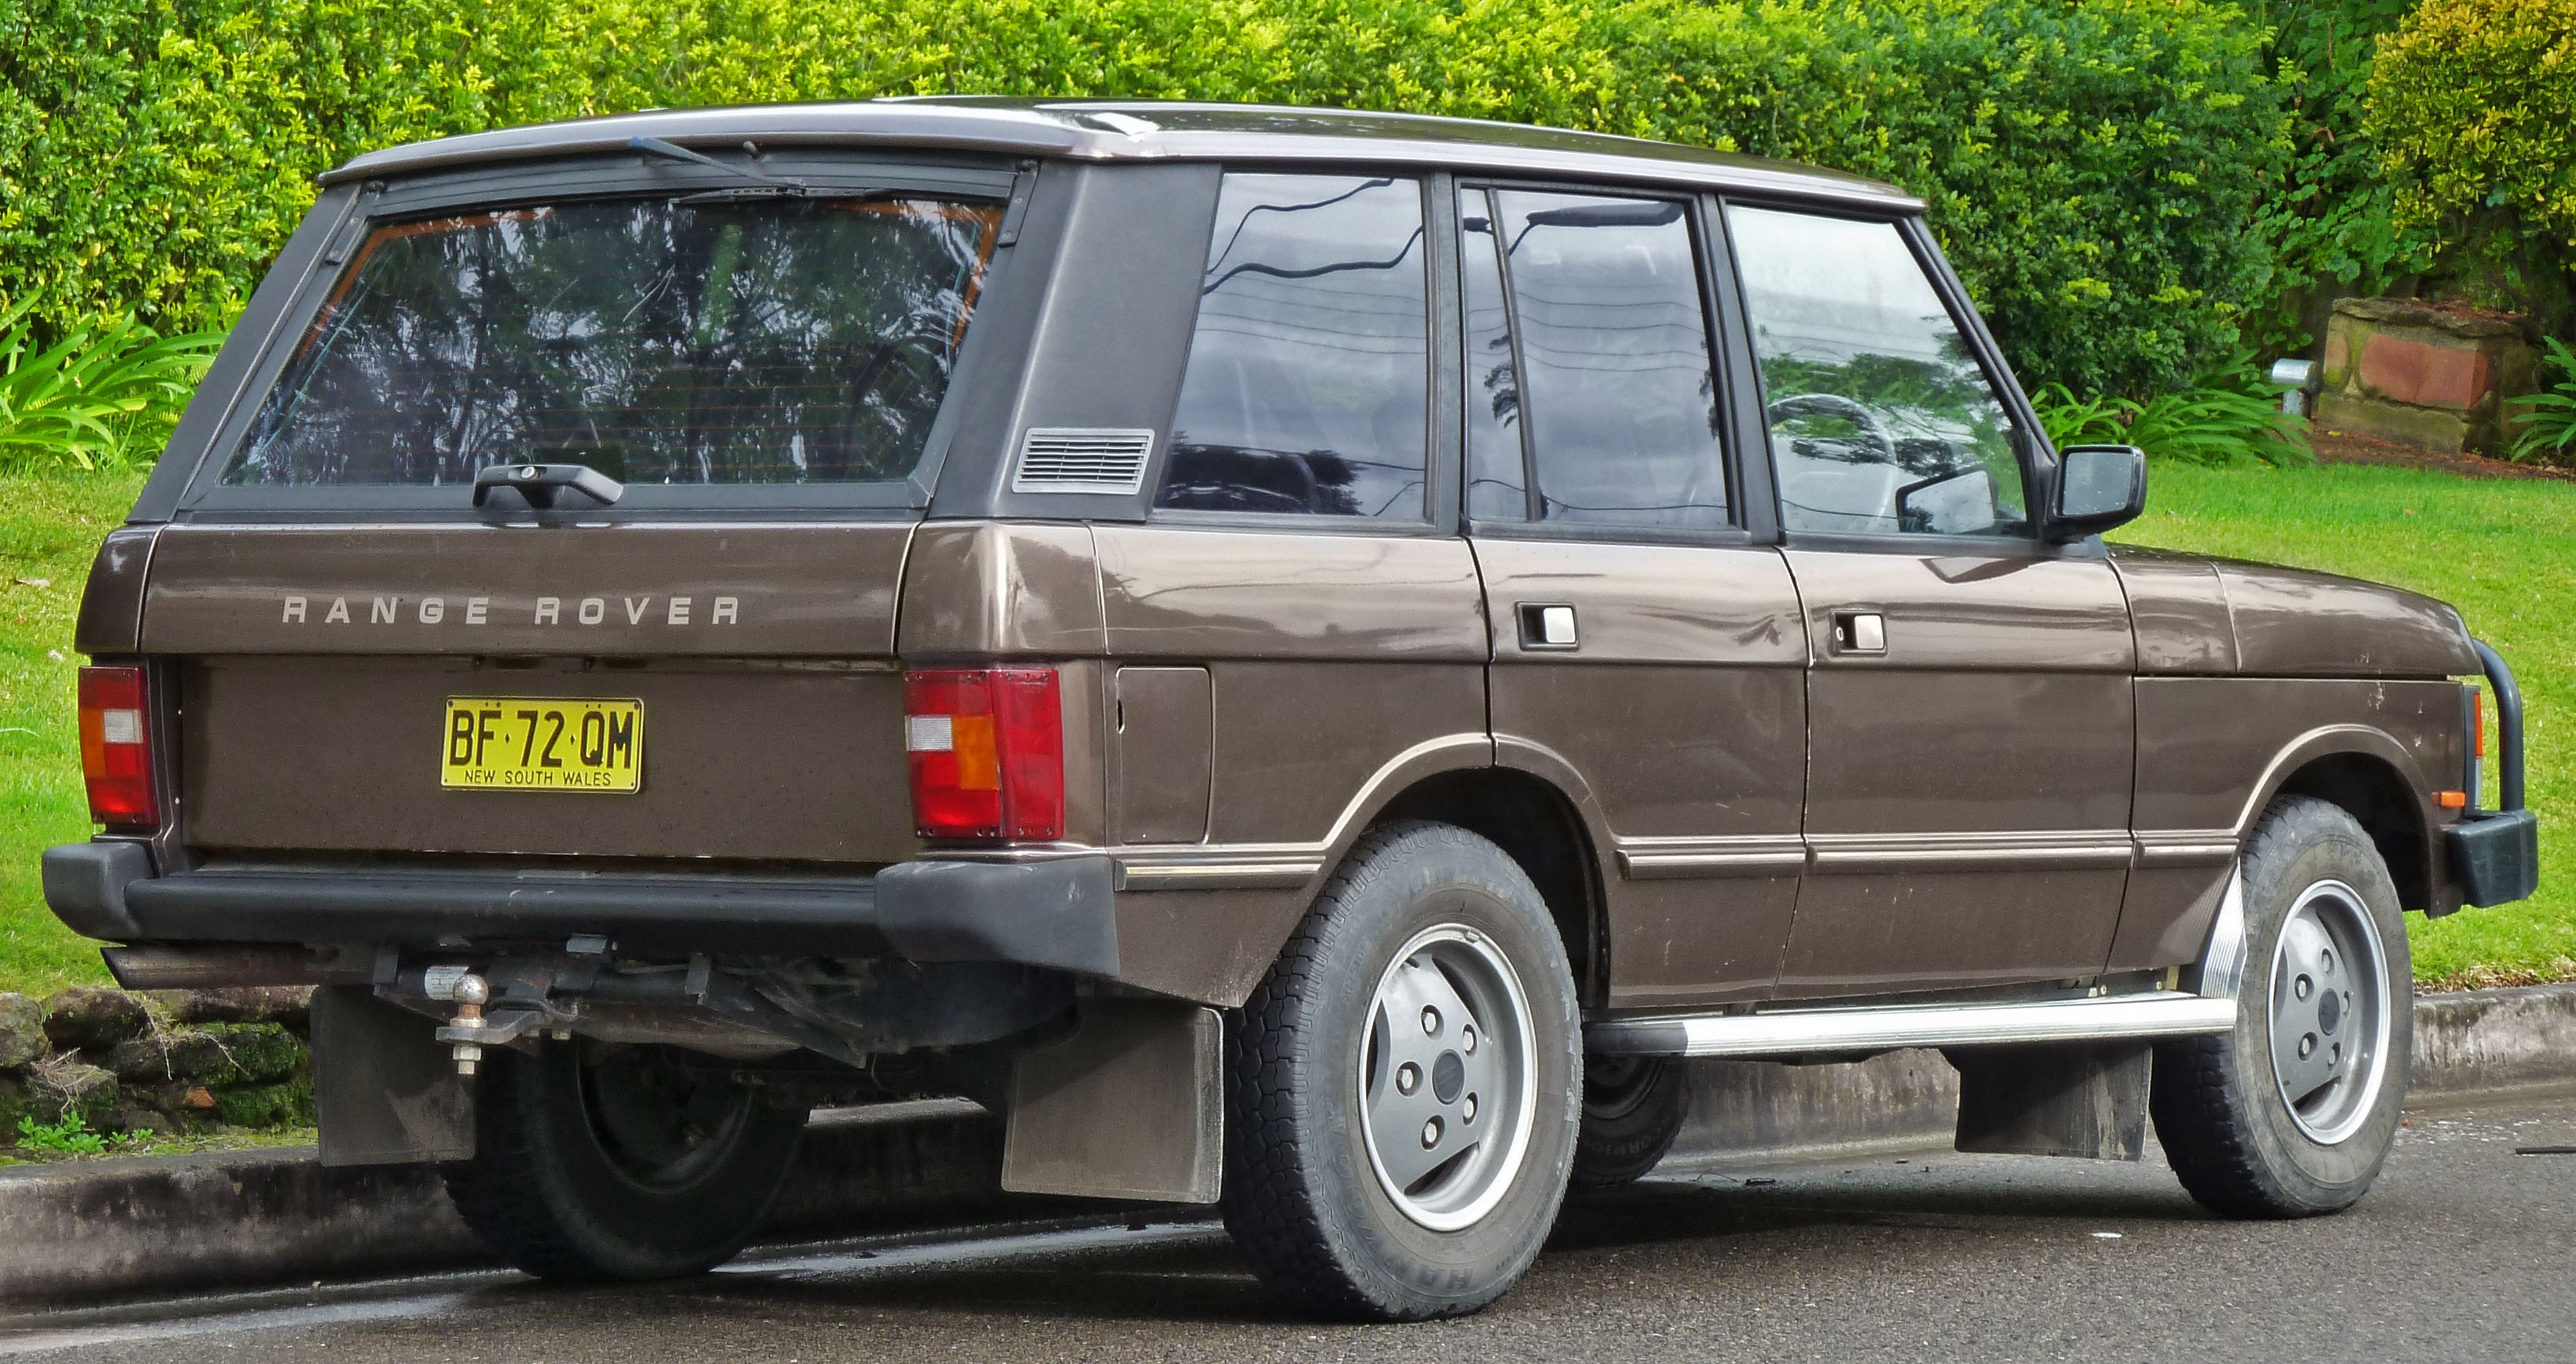 Range Rover Classic cars i have owned